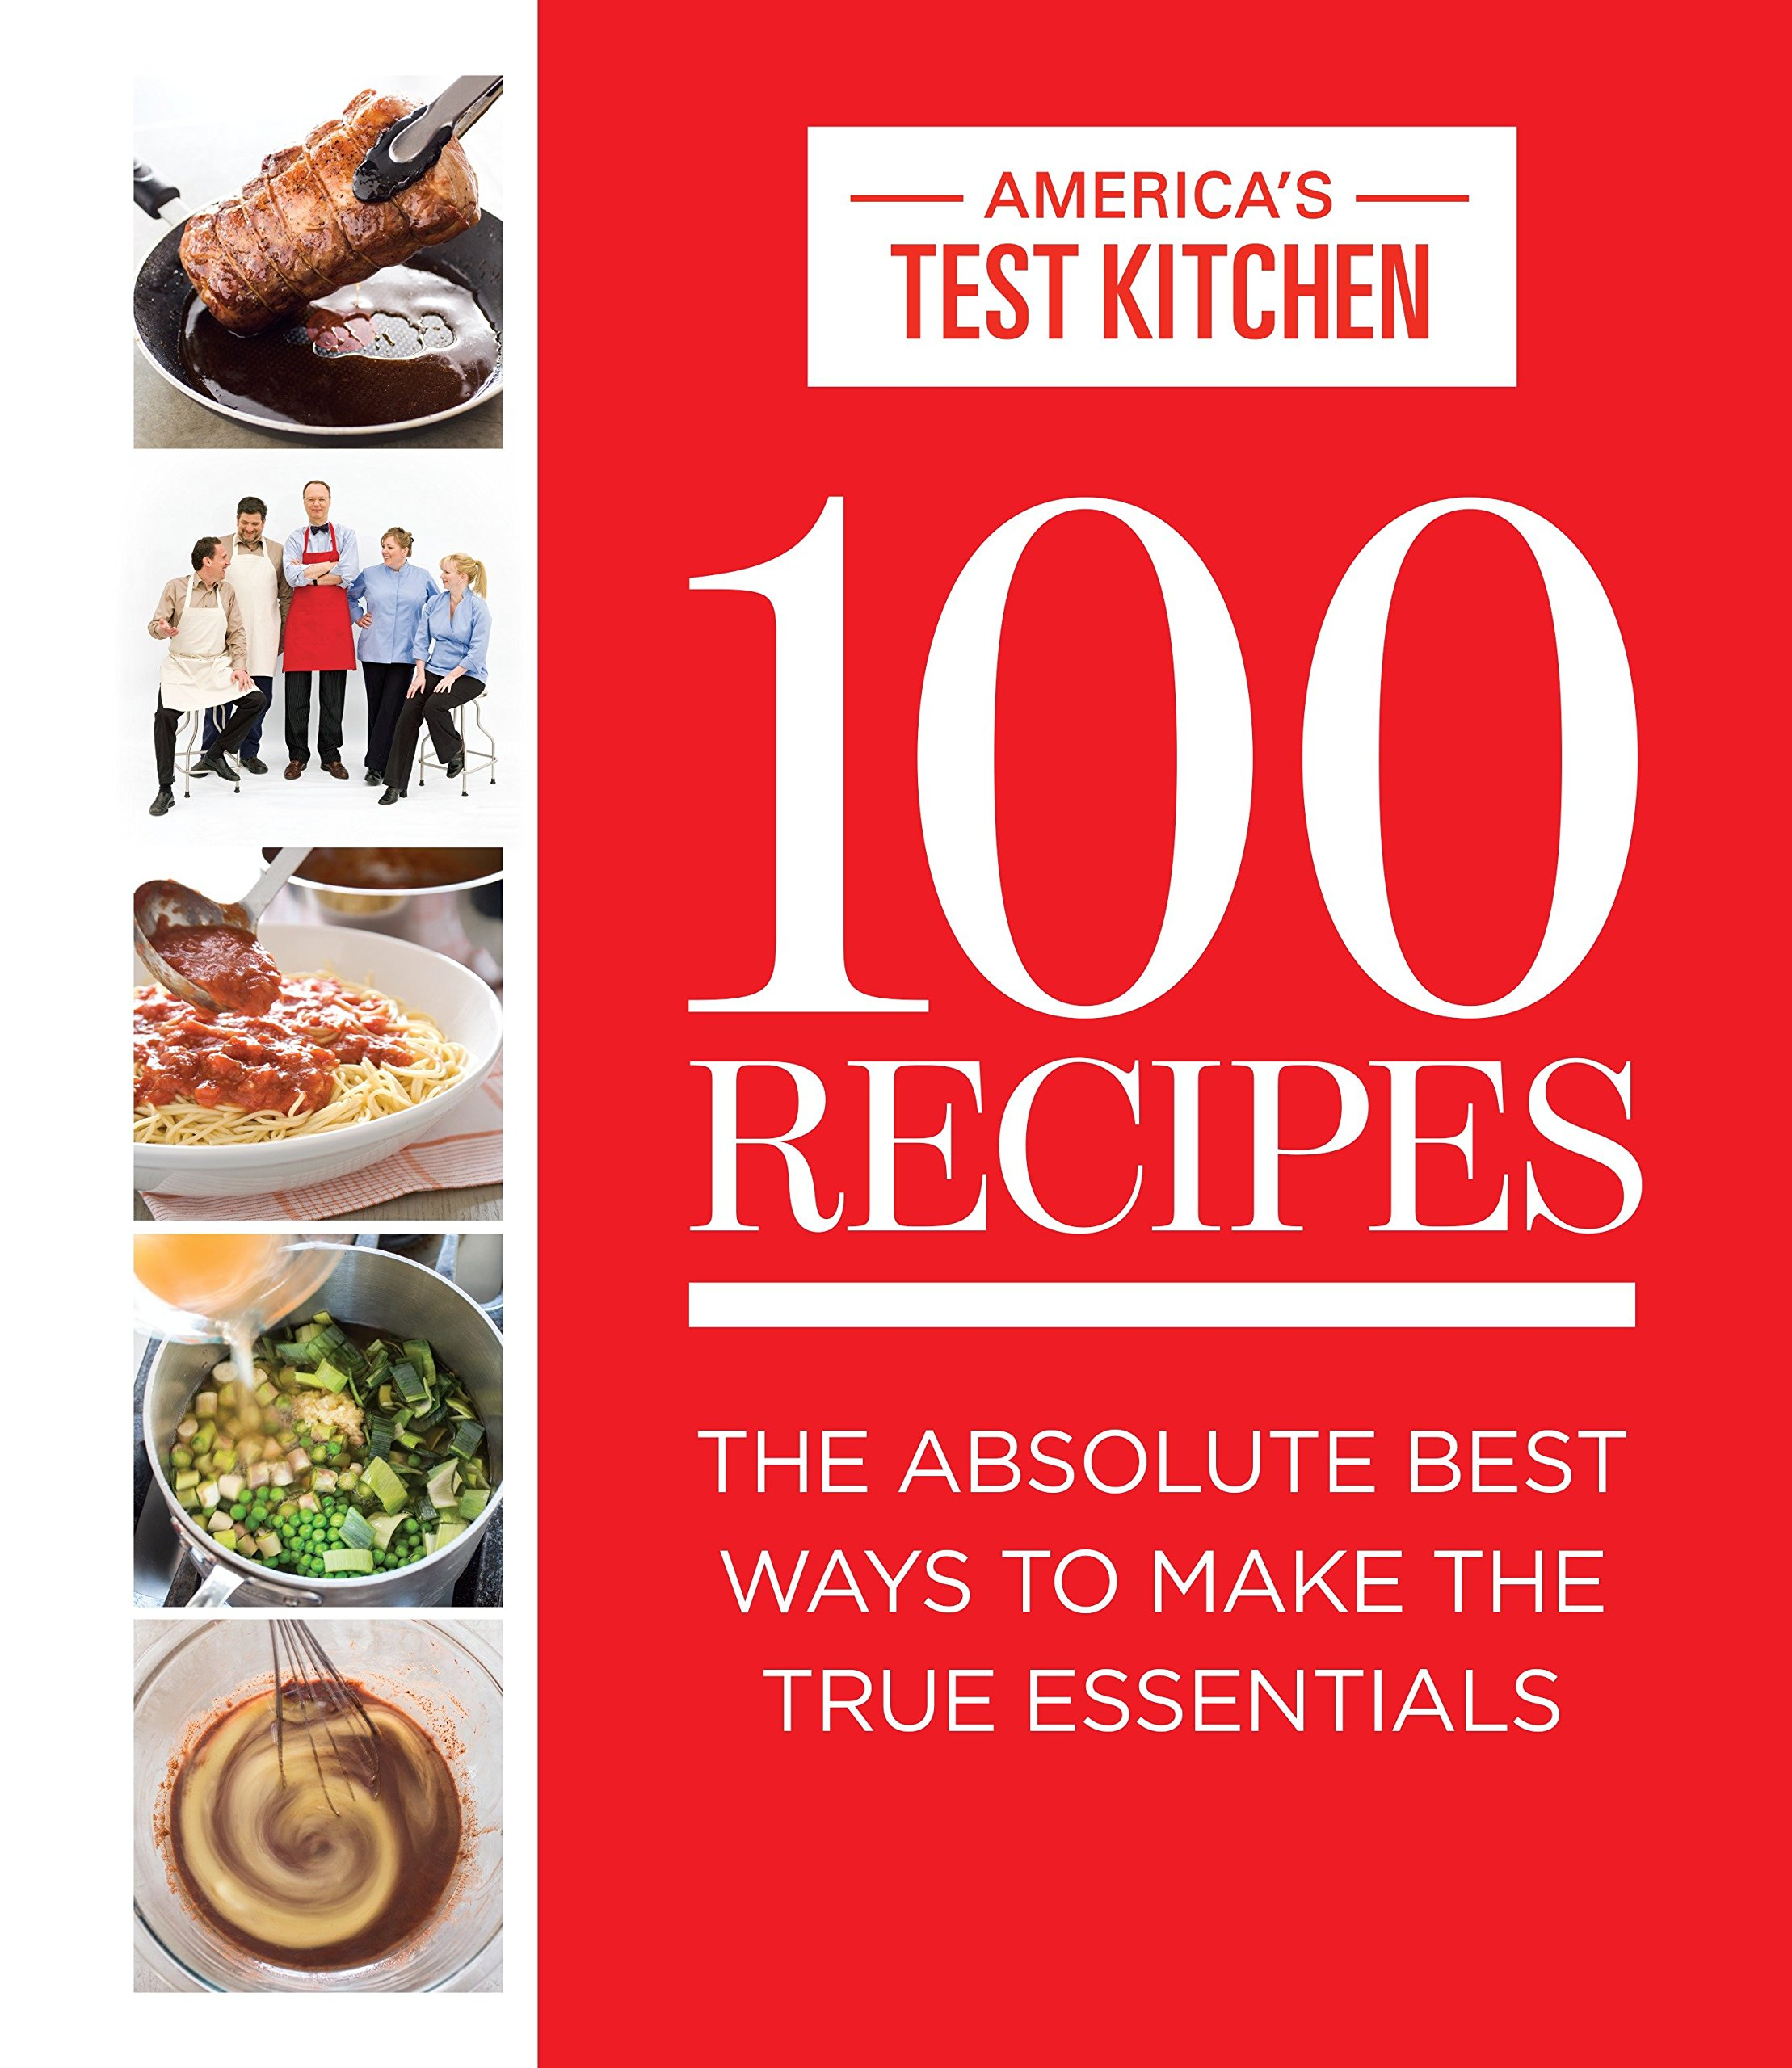 100 Recipes: The Absolute Best Ways To Make The True Essentials: America's  Test Kitchen: 9781940352015: Amazon.com: Books